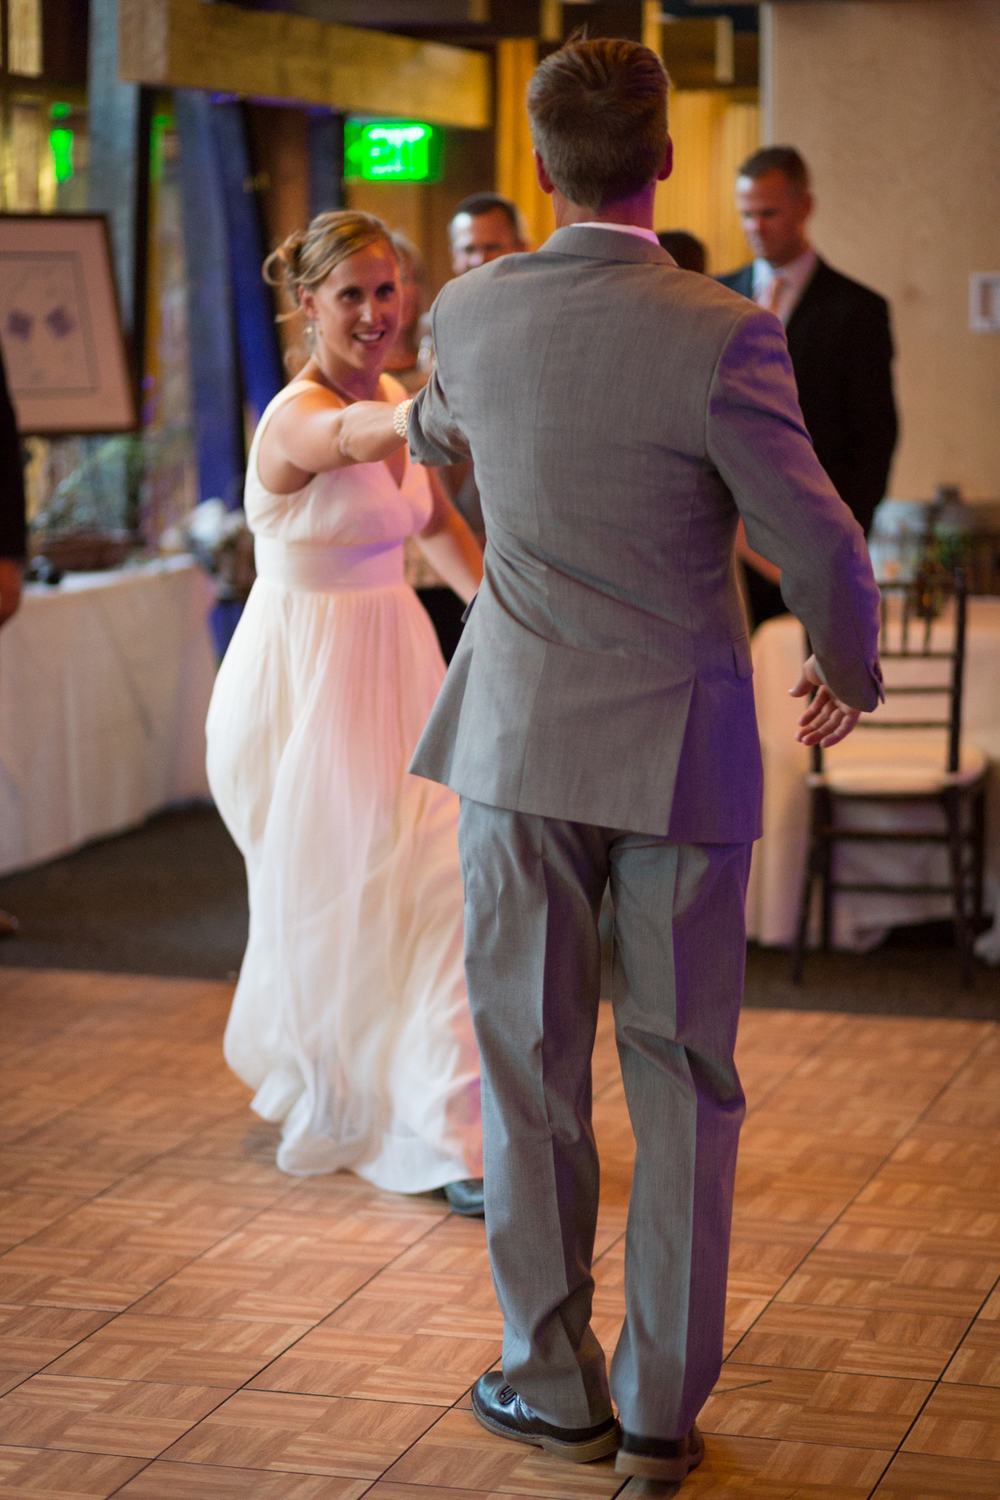 20130811_FishcerWedding_02009_EIP.jpg